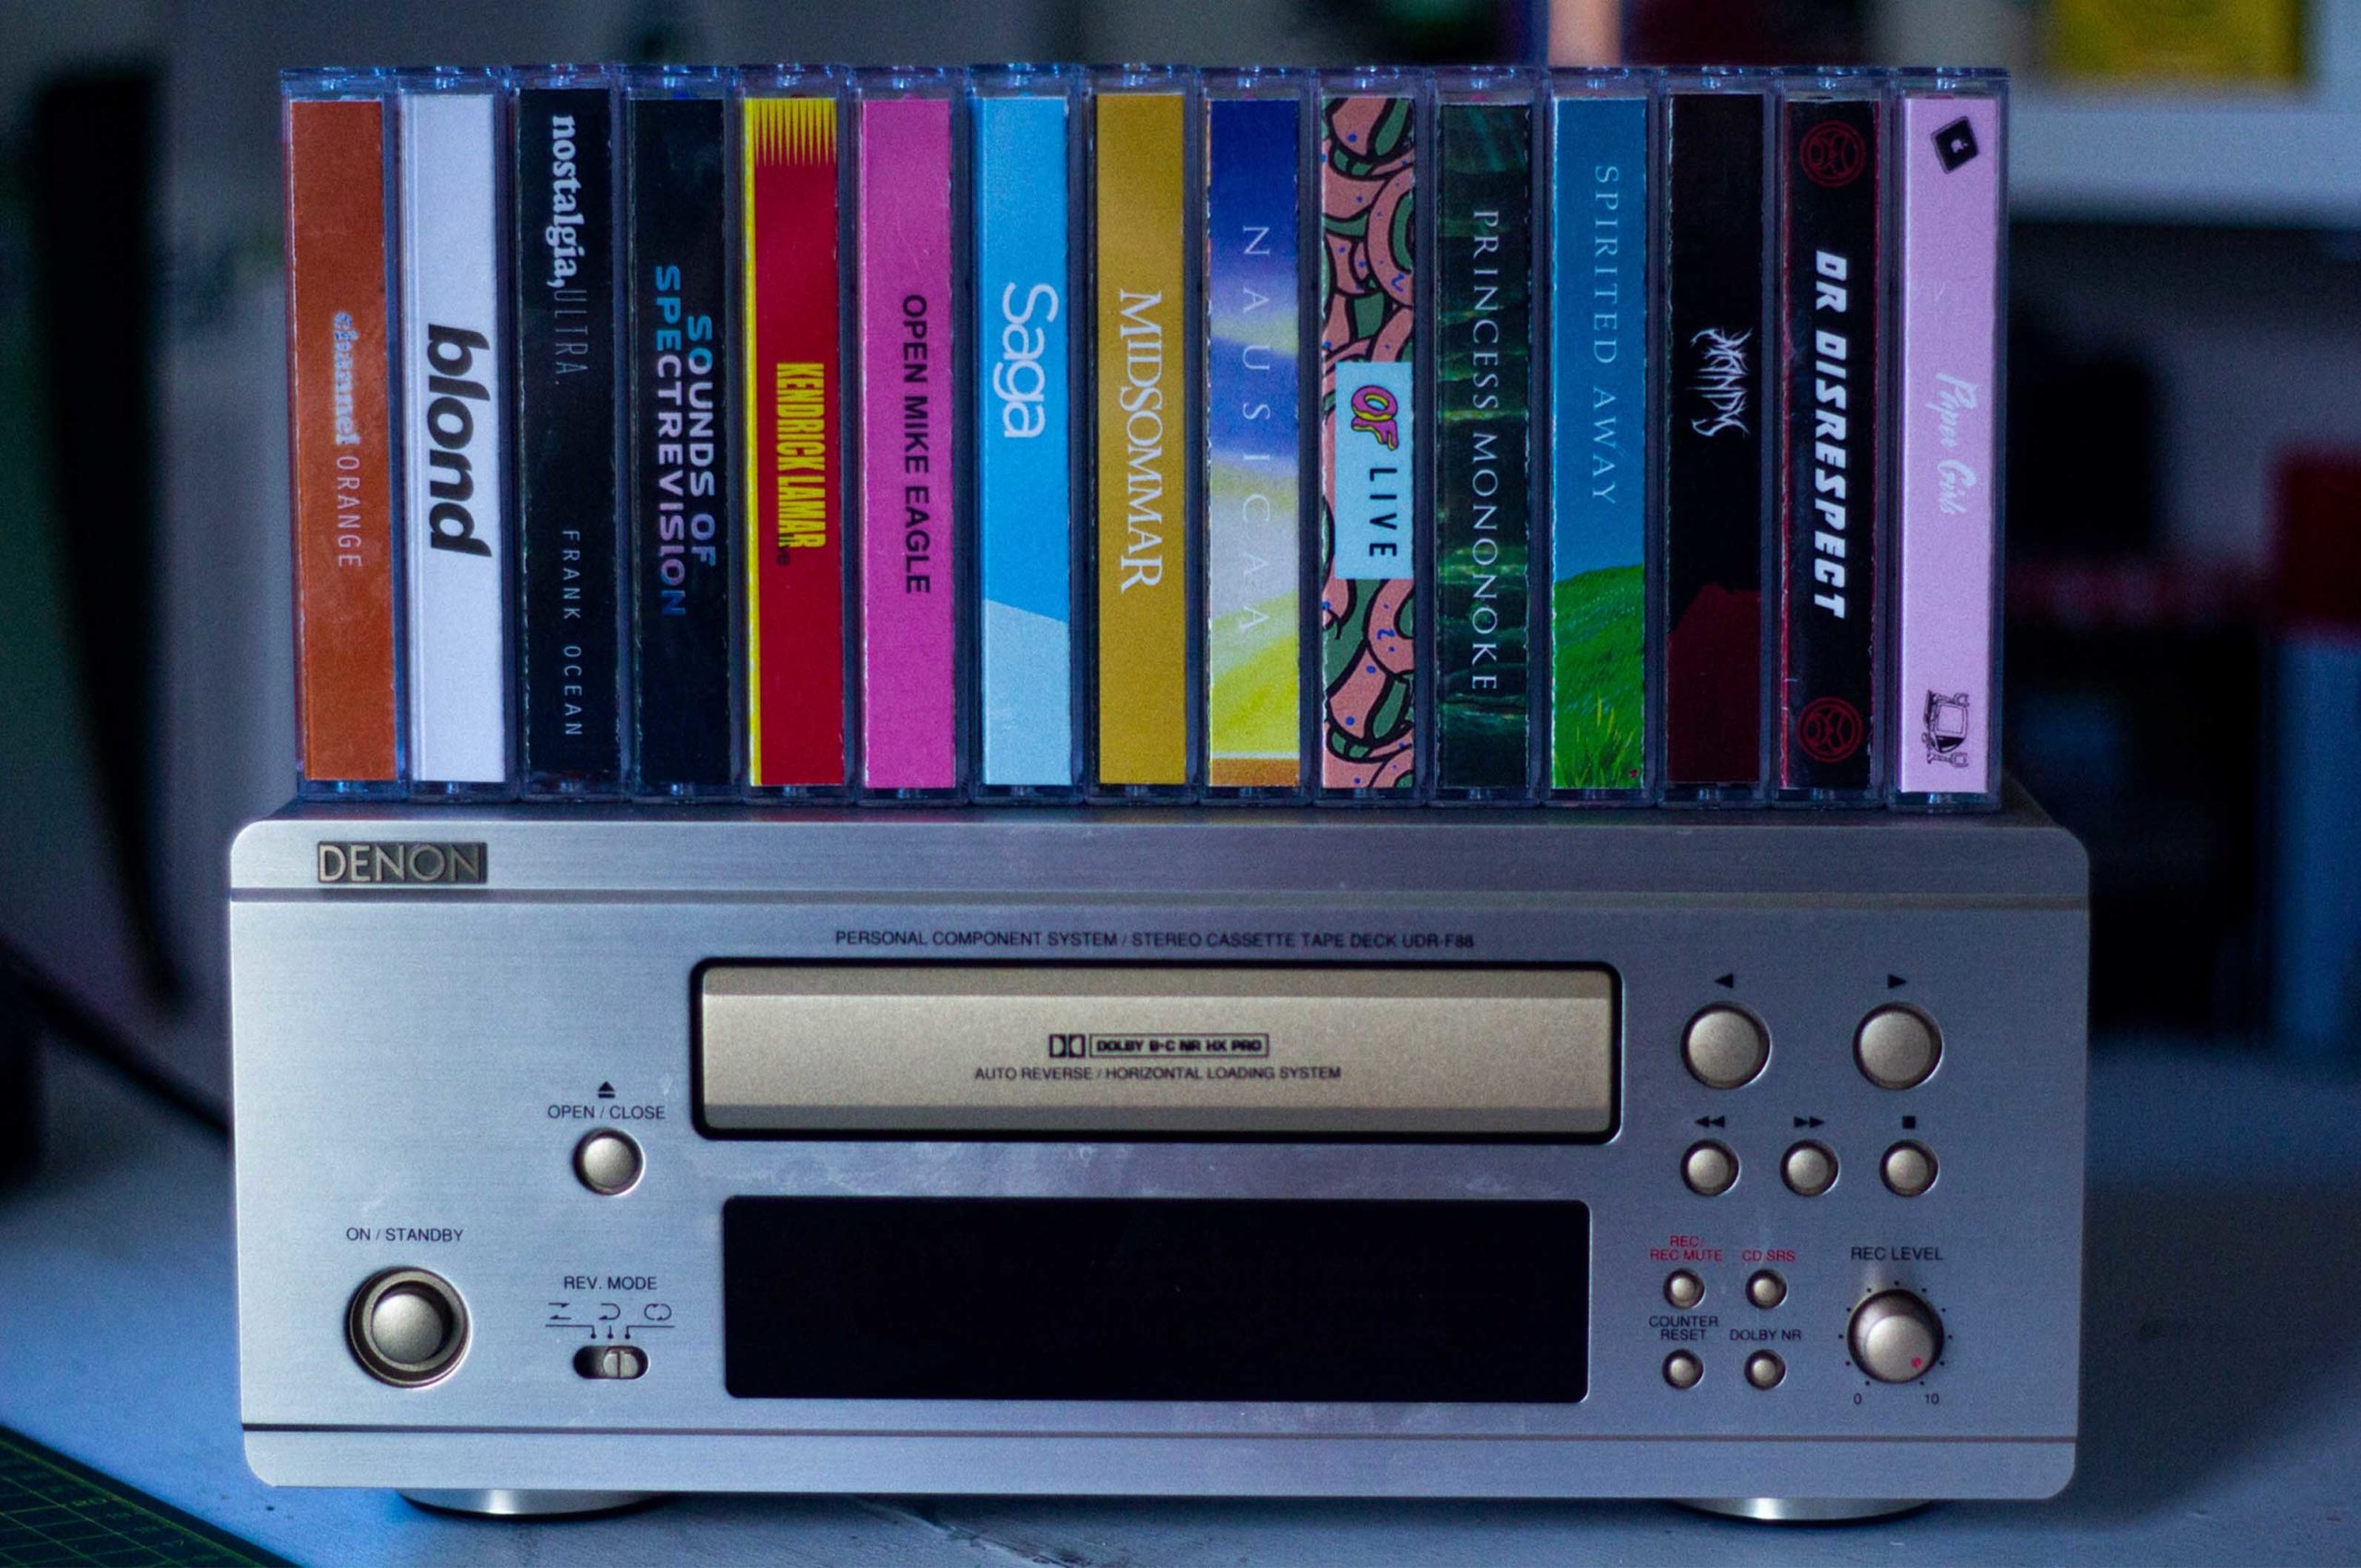 Somne of my collection with one of my cassette decks